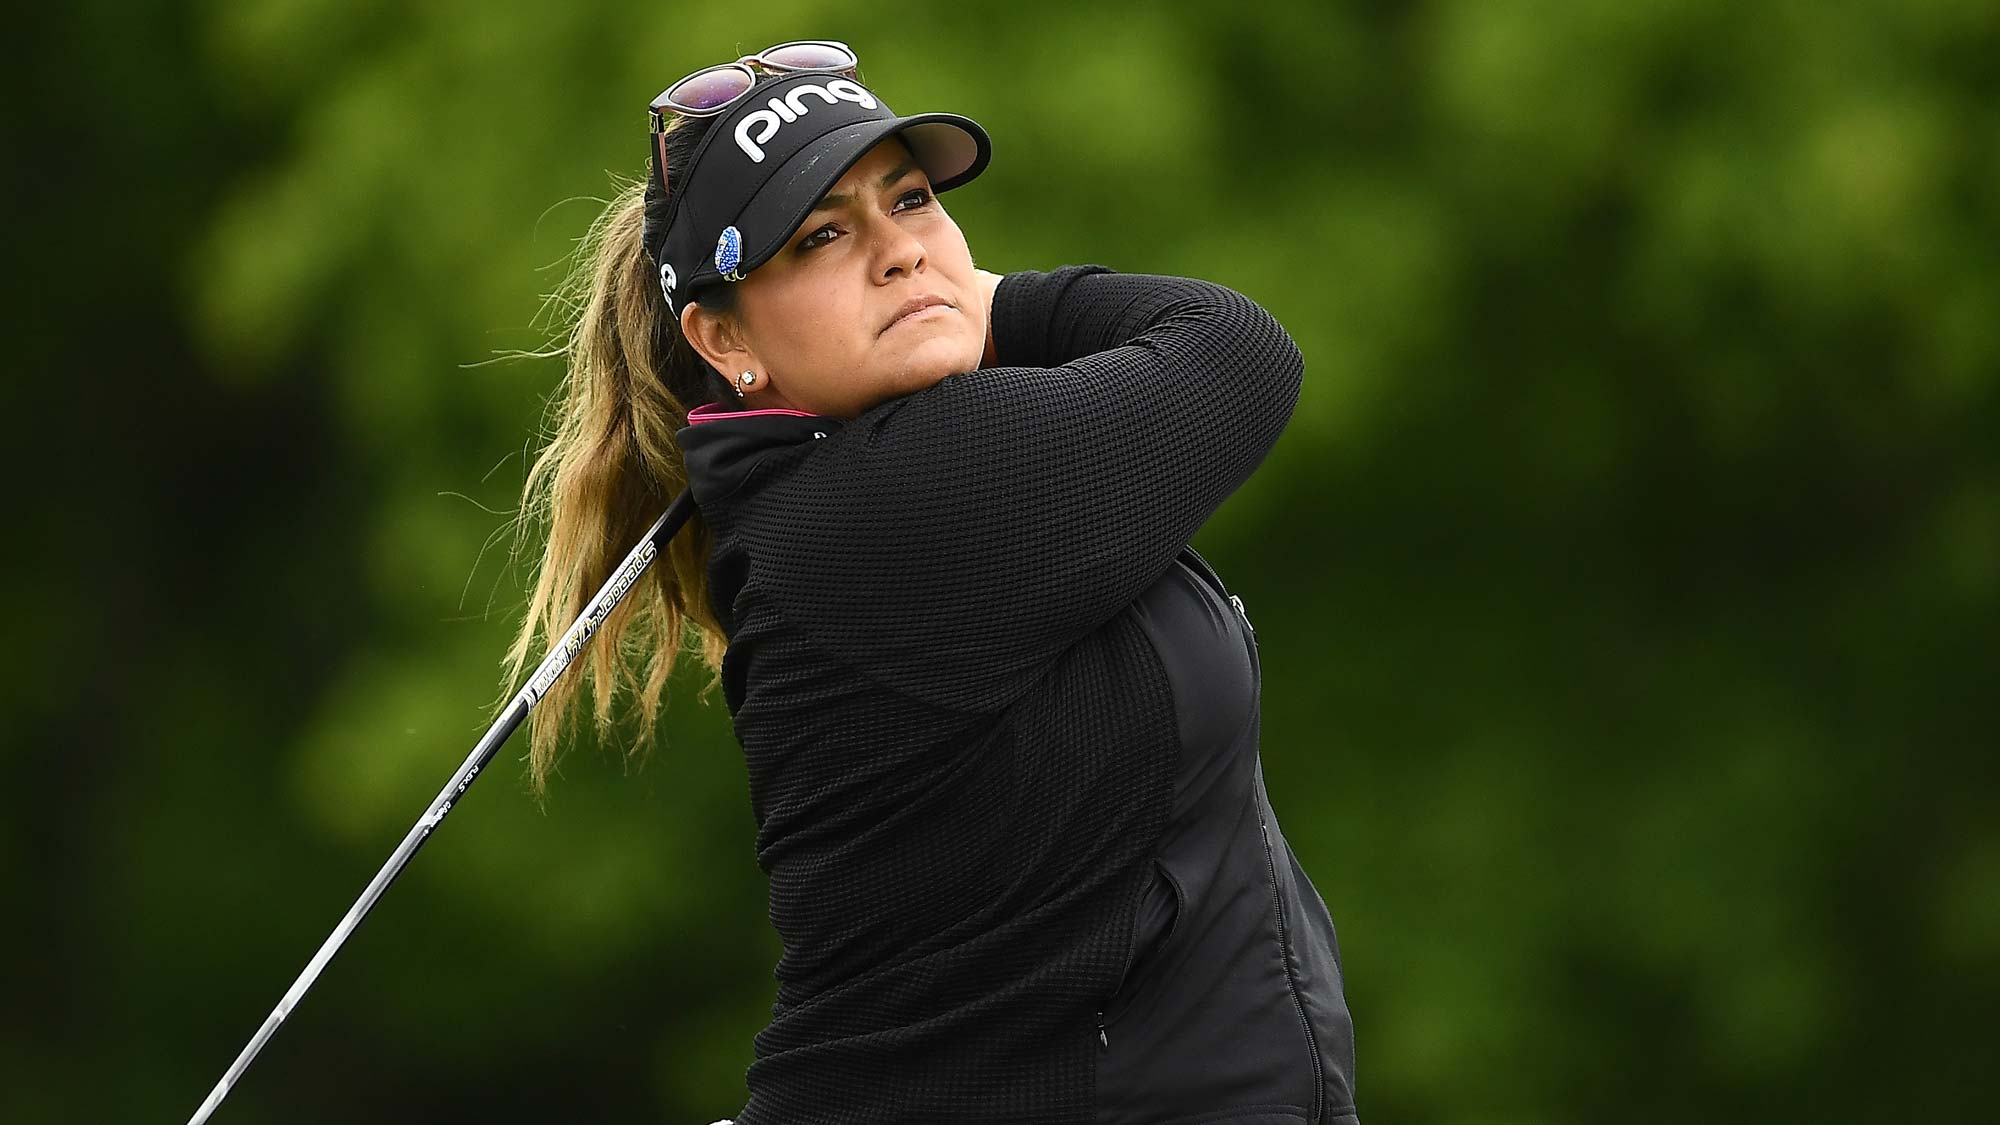 Lizette Salas hits her tee shot on the 10th hole during the second round of the KPMG PGA Championship